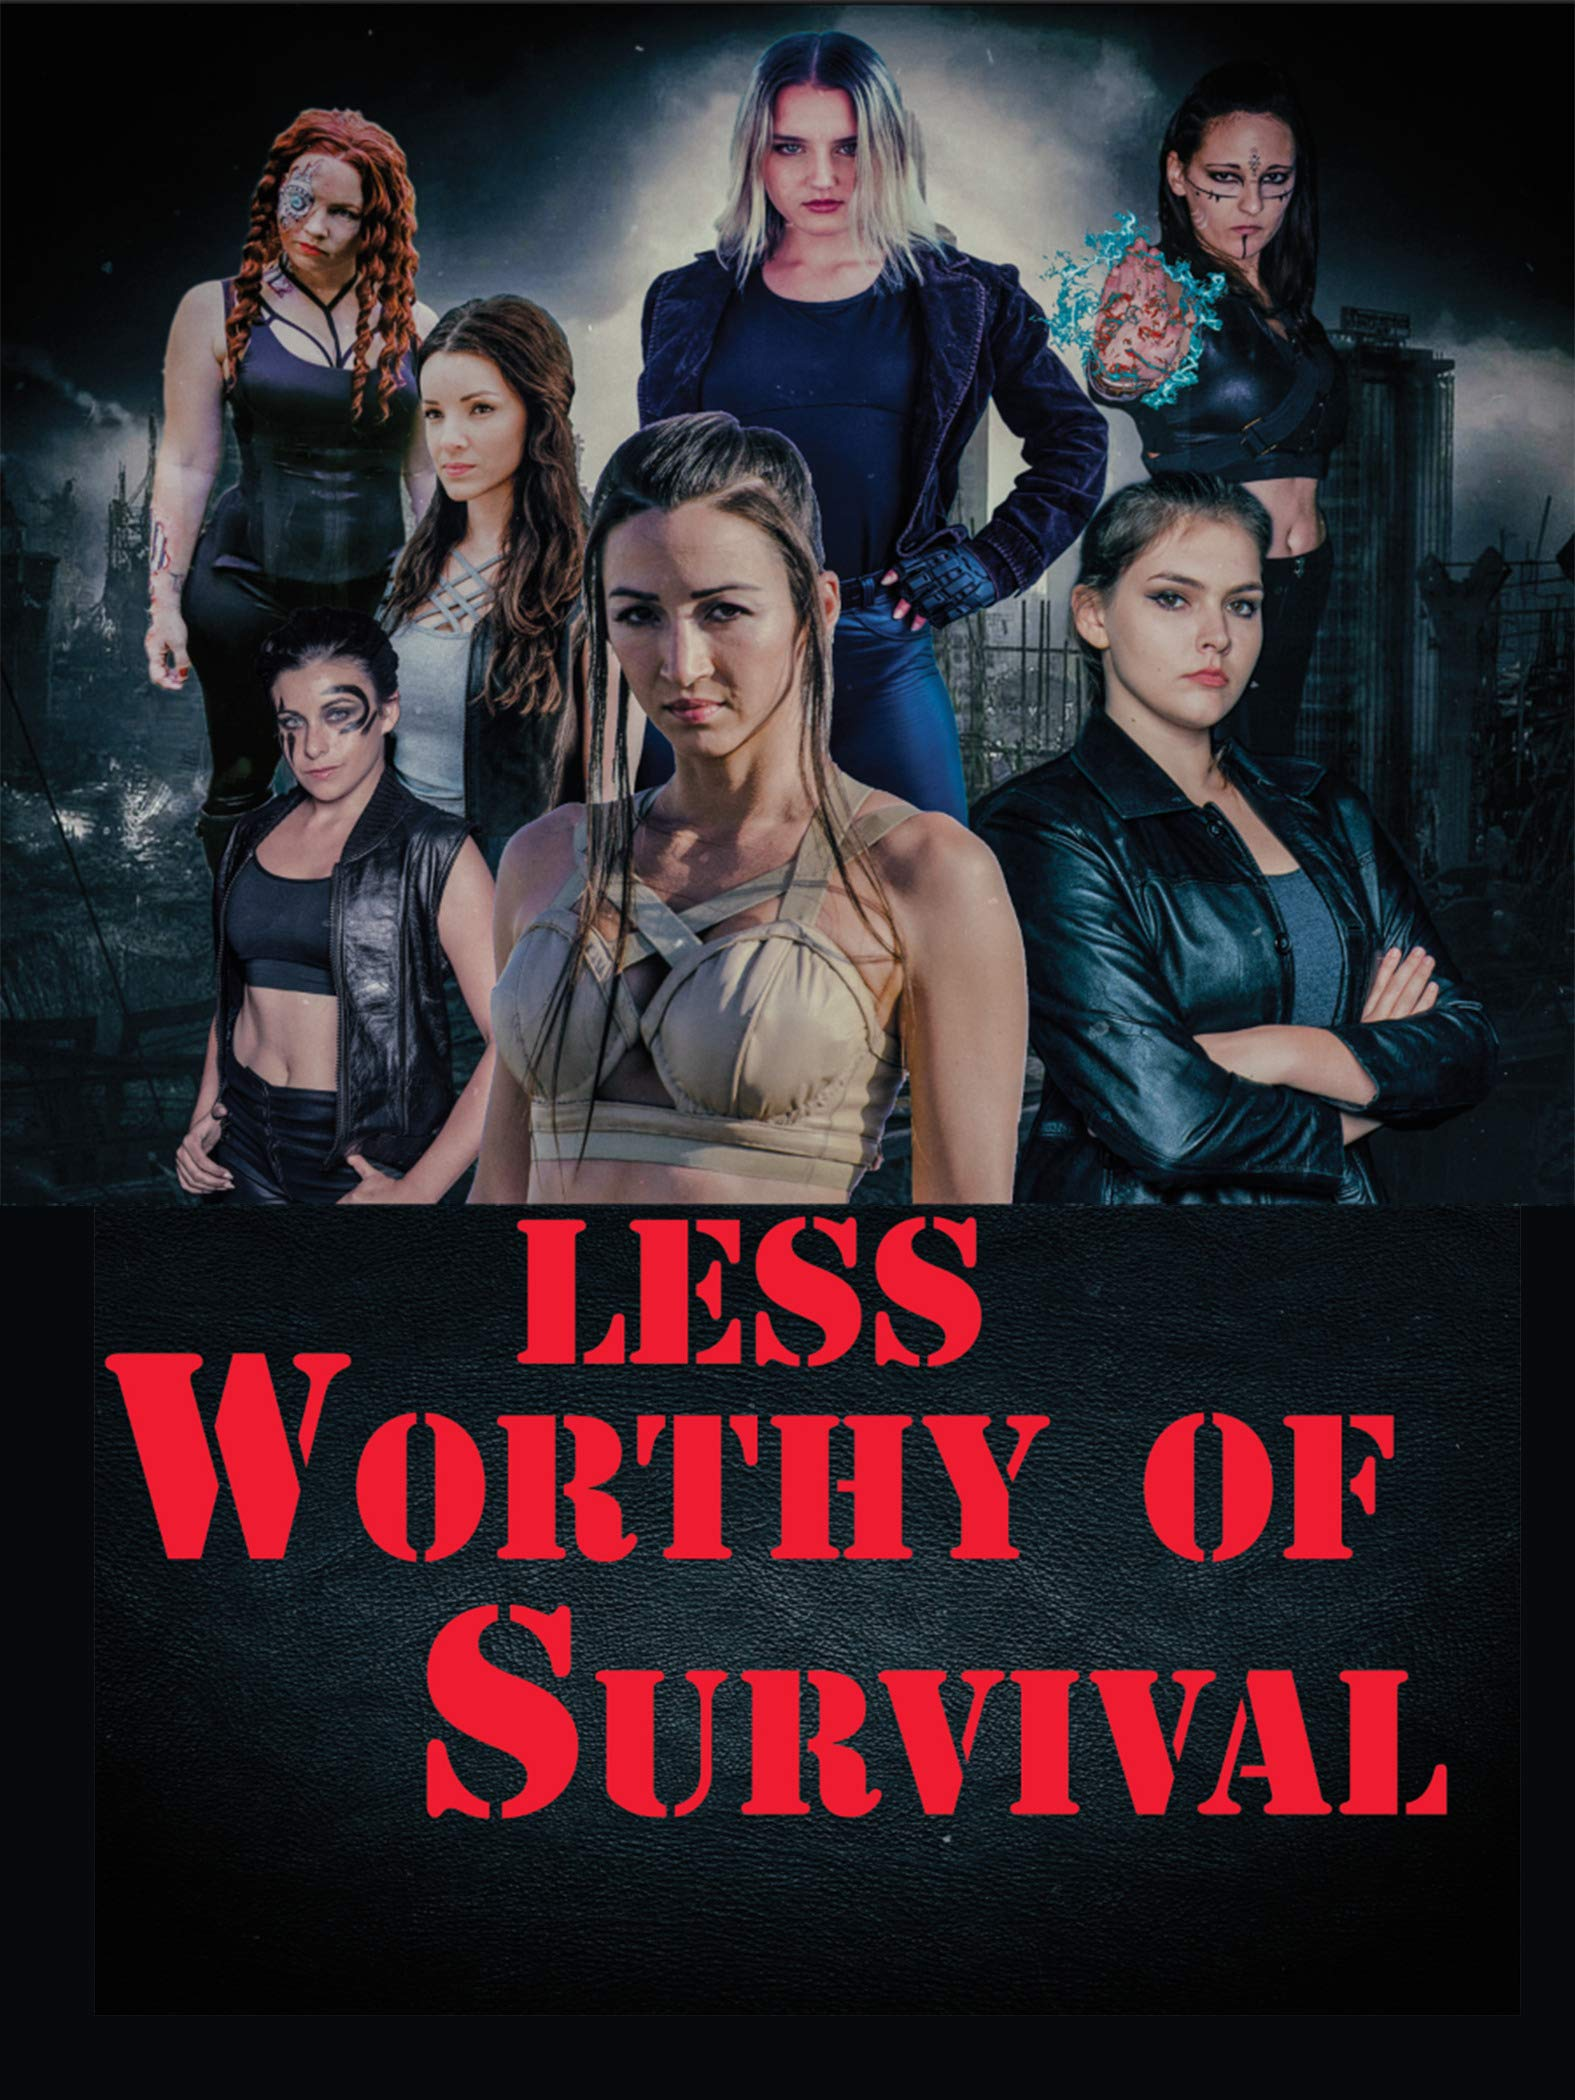 Less Worthy of Survival